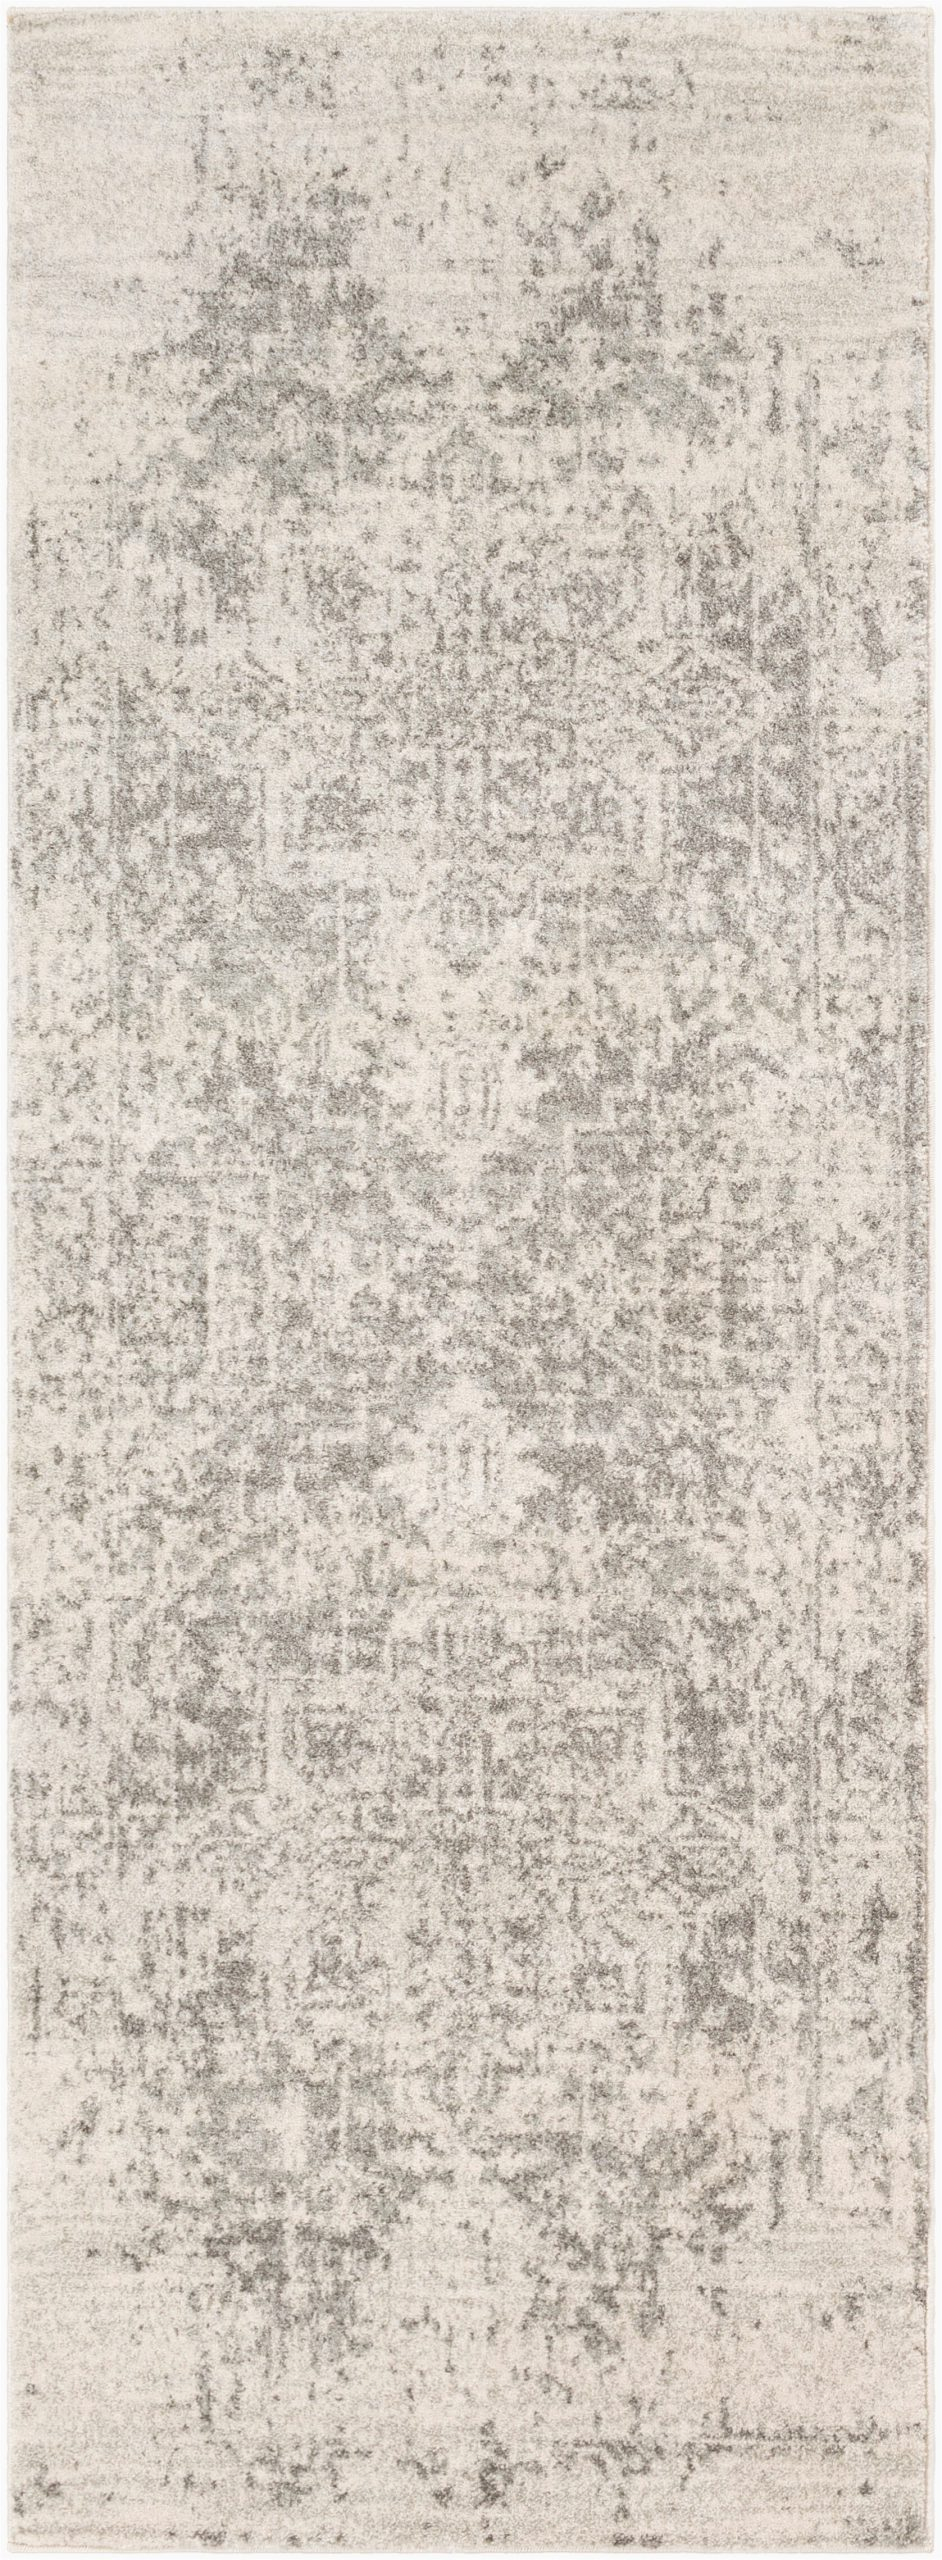 Hillsby Charcoal Light Gray Beige area Rug Hillsby oriental Charcoal Light Gray Beige area Rug